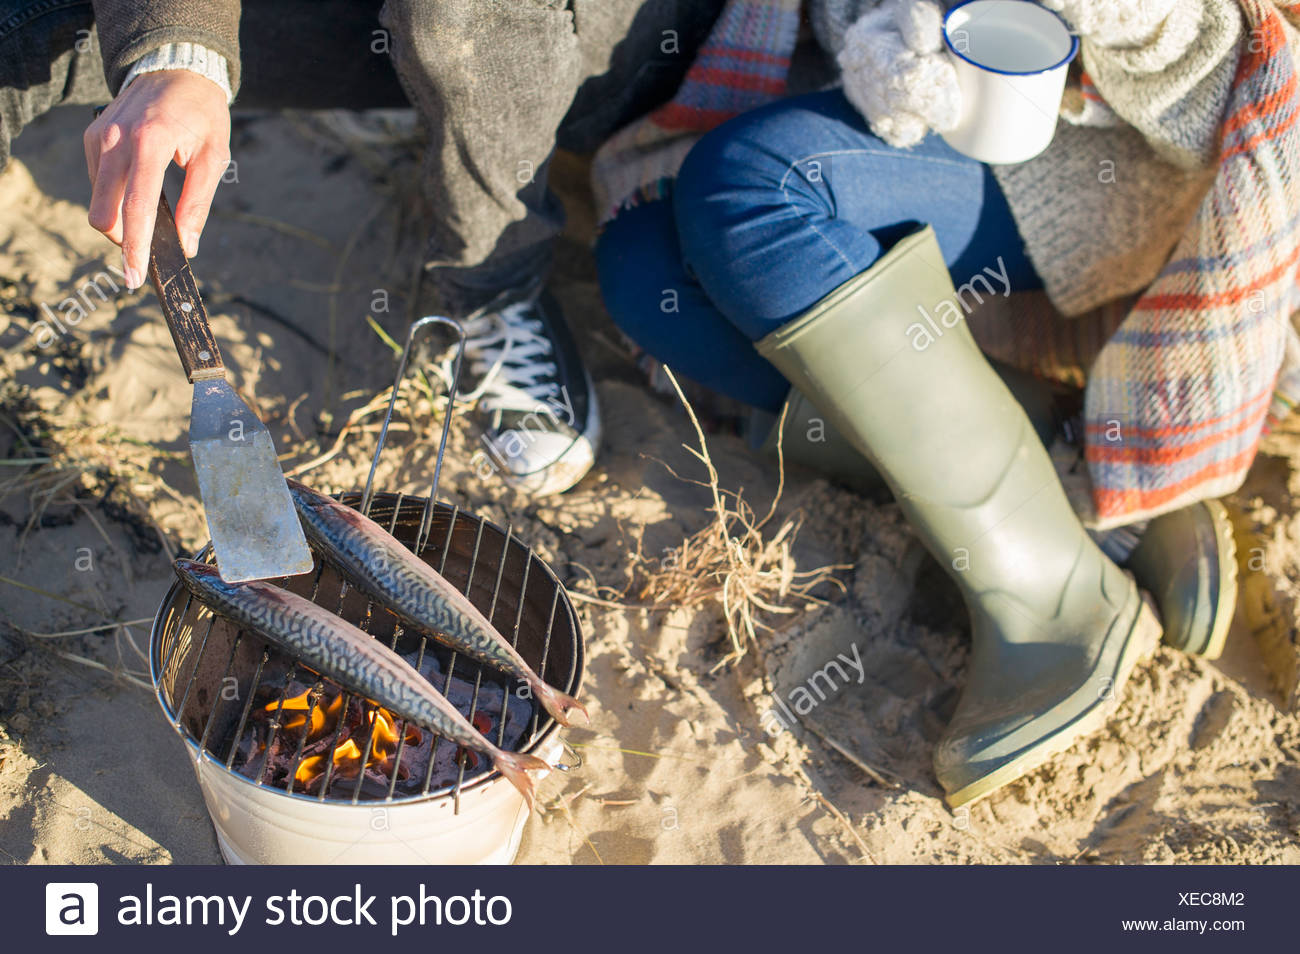 Cooking fish on the beach - Stock Image